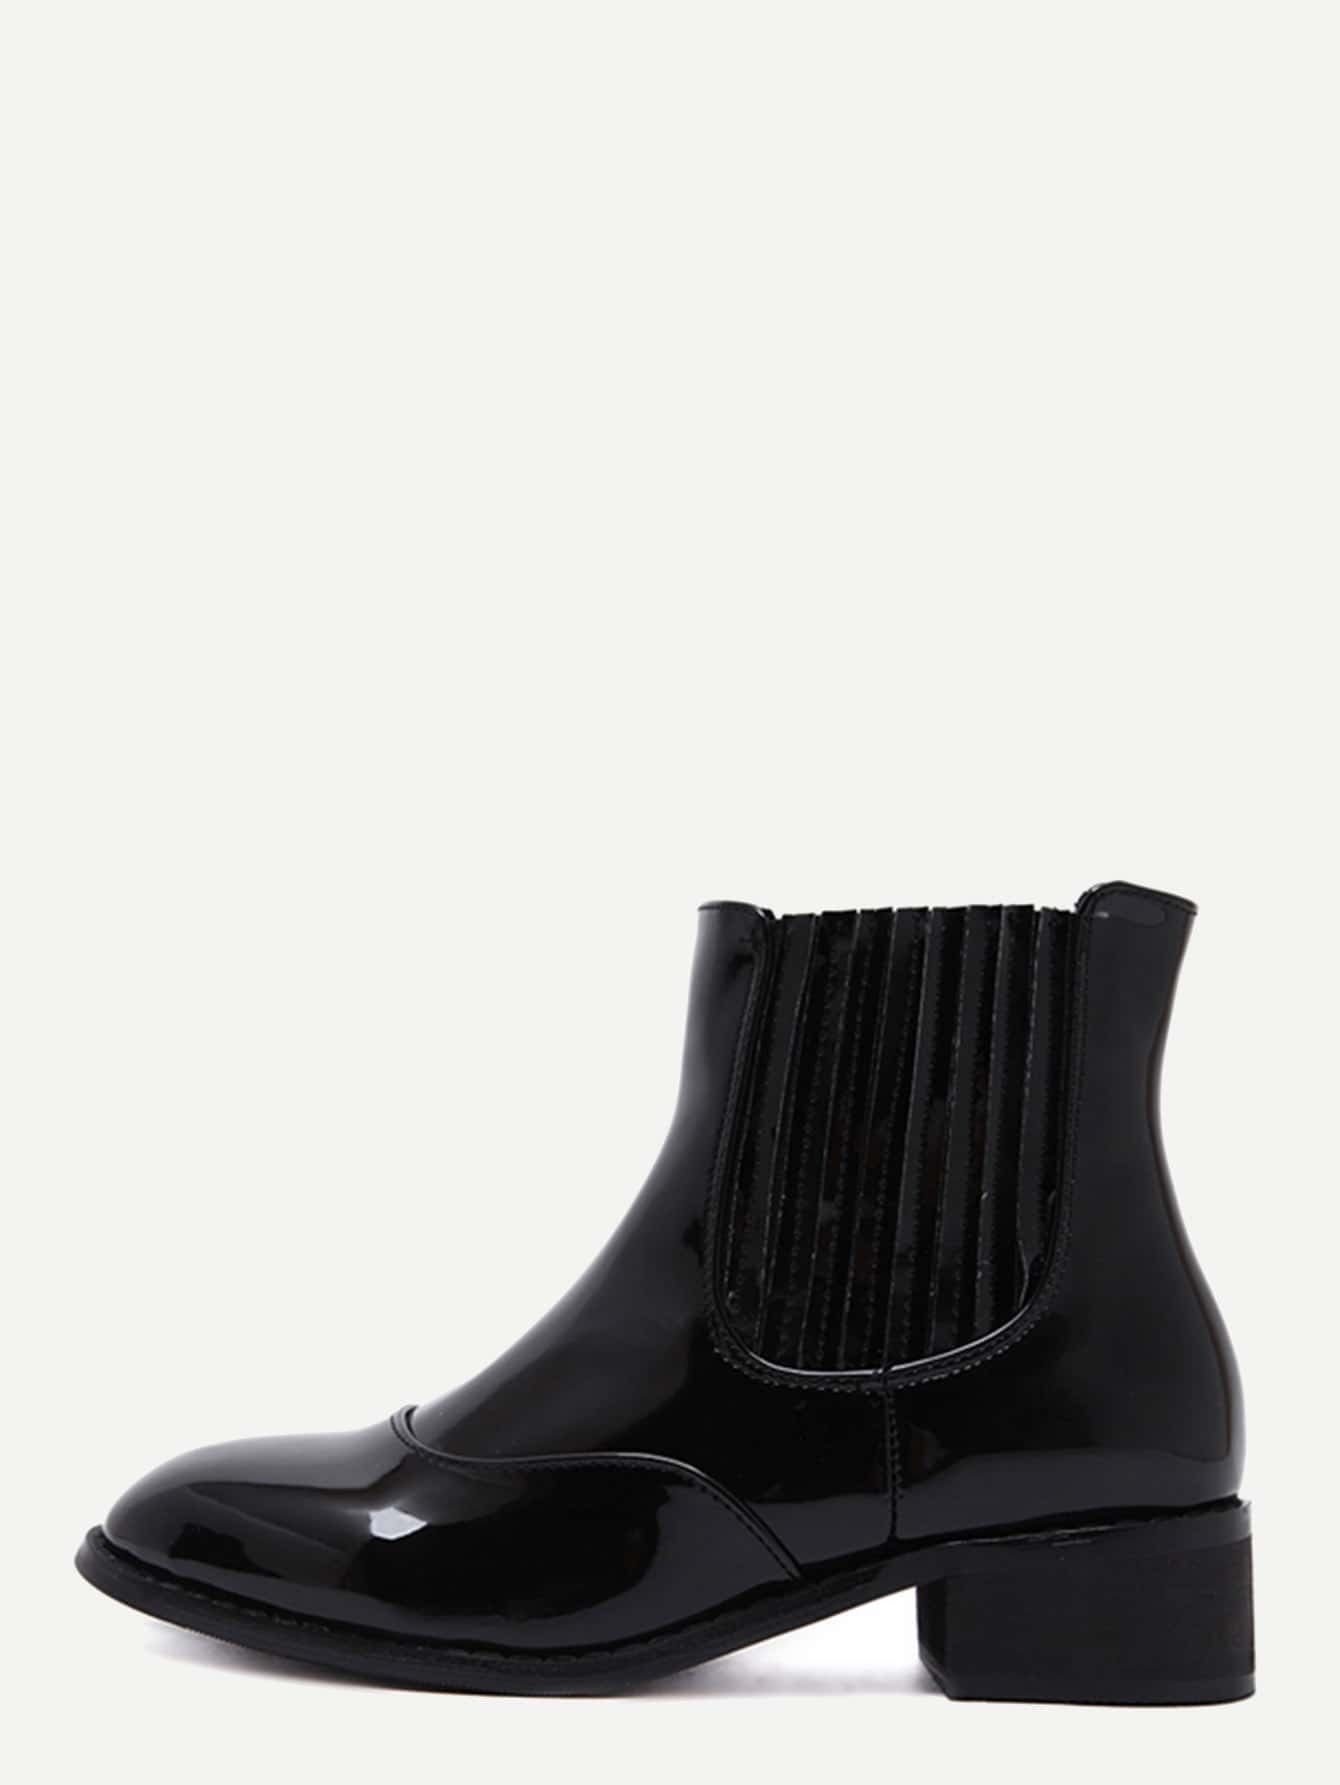 black patent leather almond toe chelsea boots